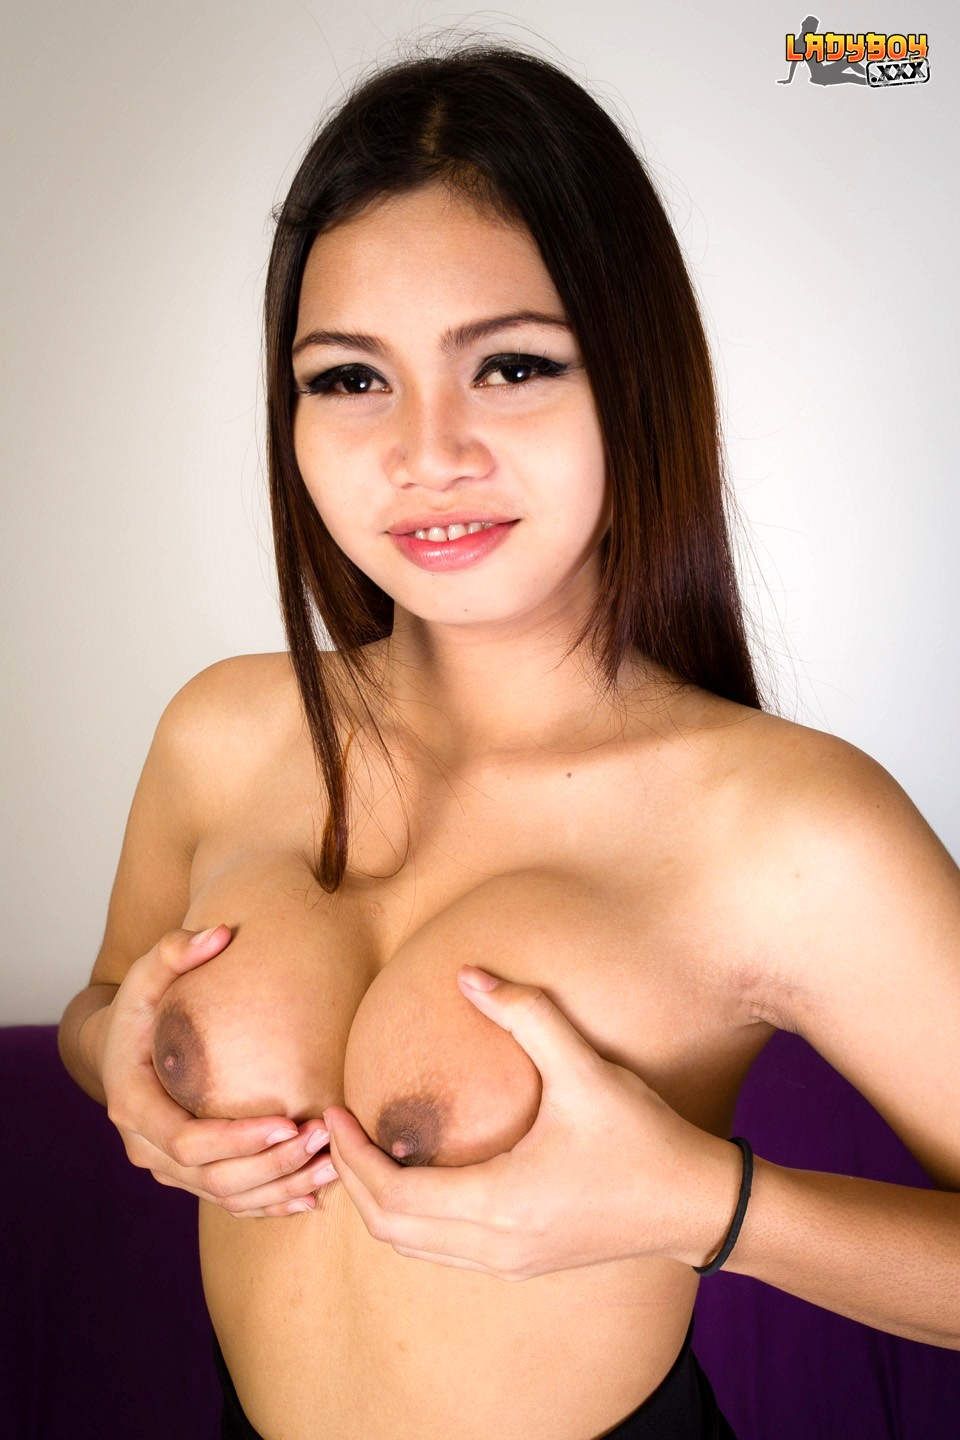 Nenn Is An 18 Year Old TGirl From Issan. Shes About To Tur